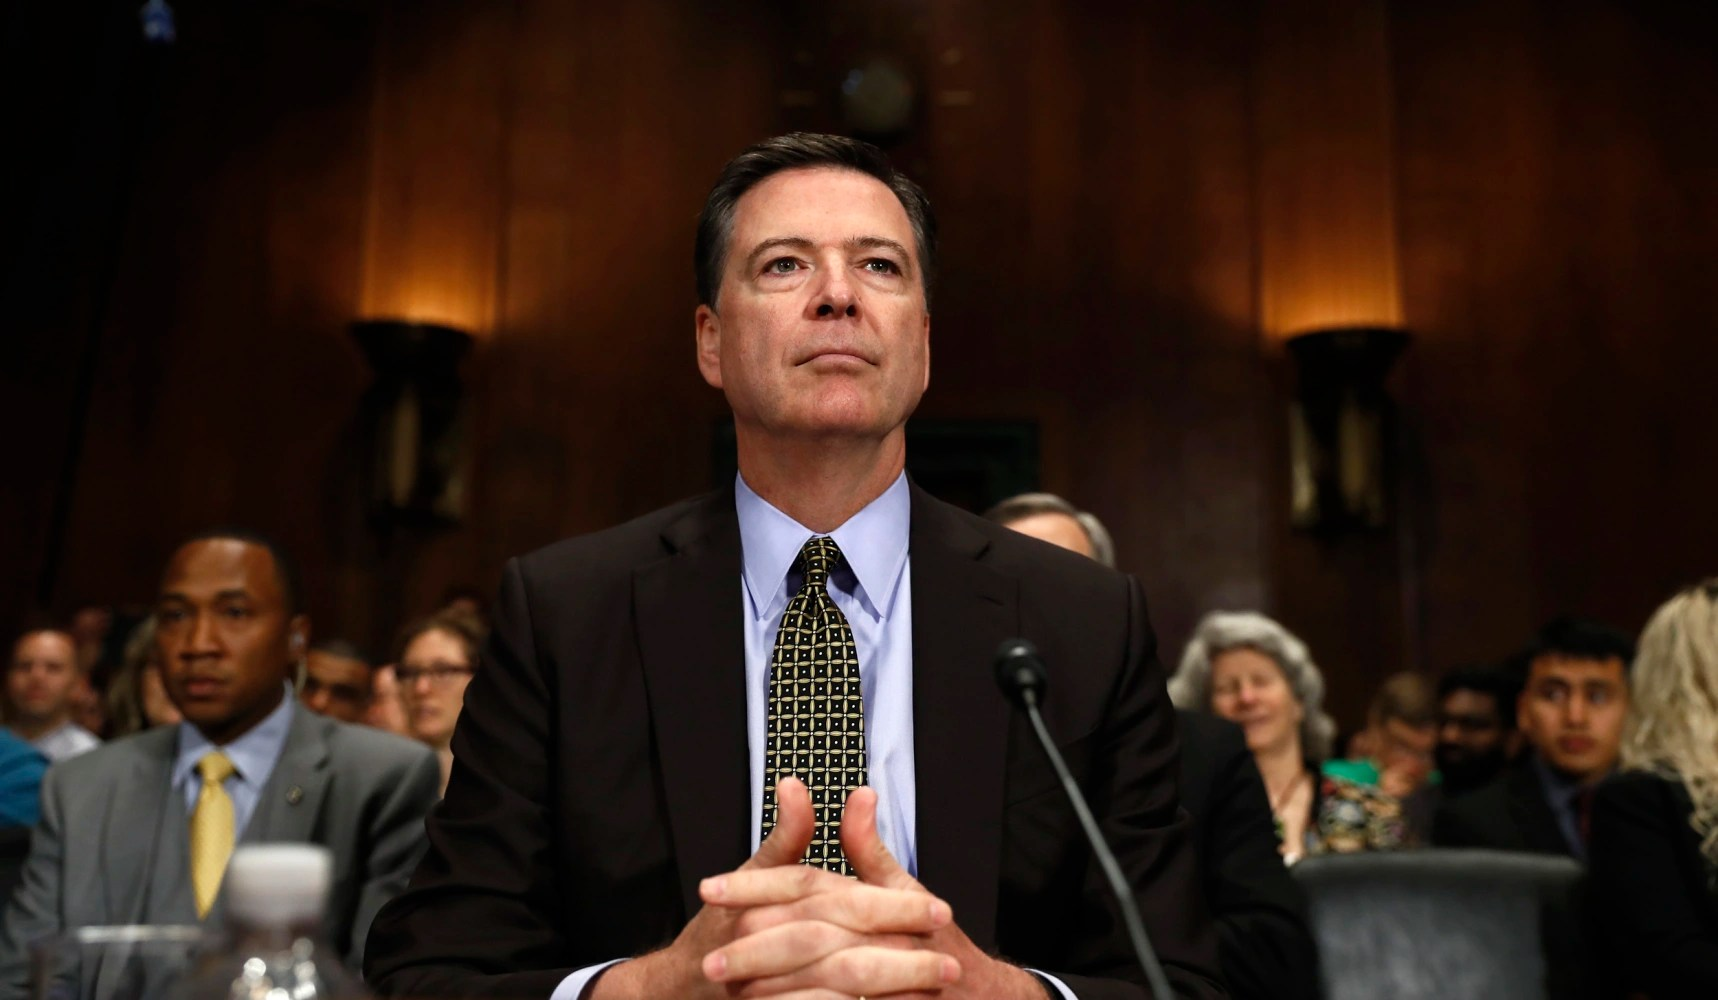 Comey to Testify Publicly After Memorial Day